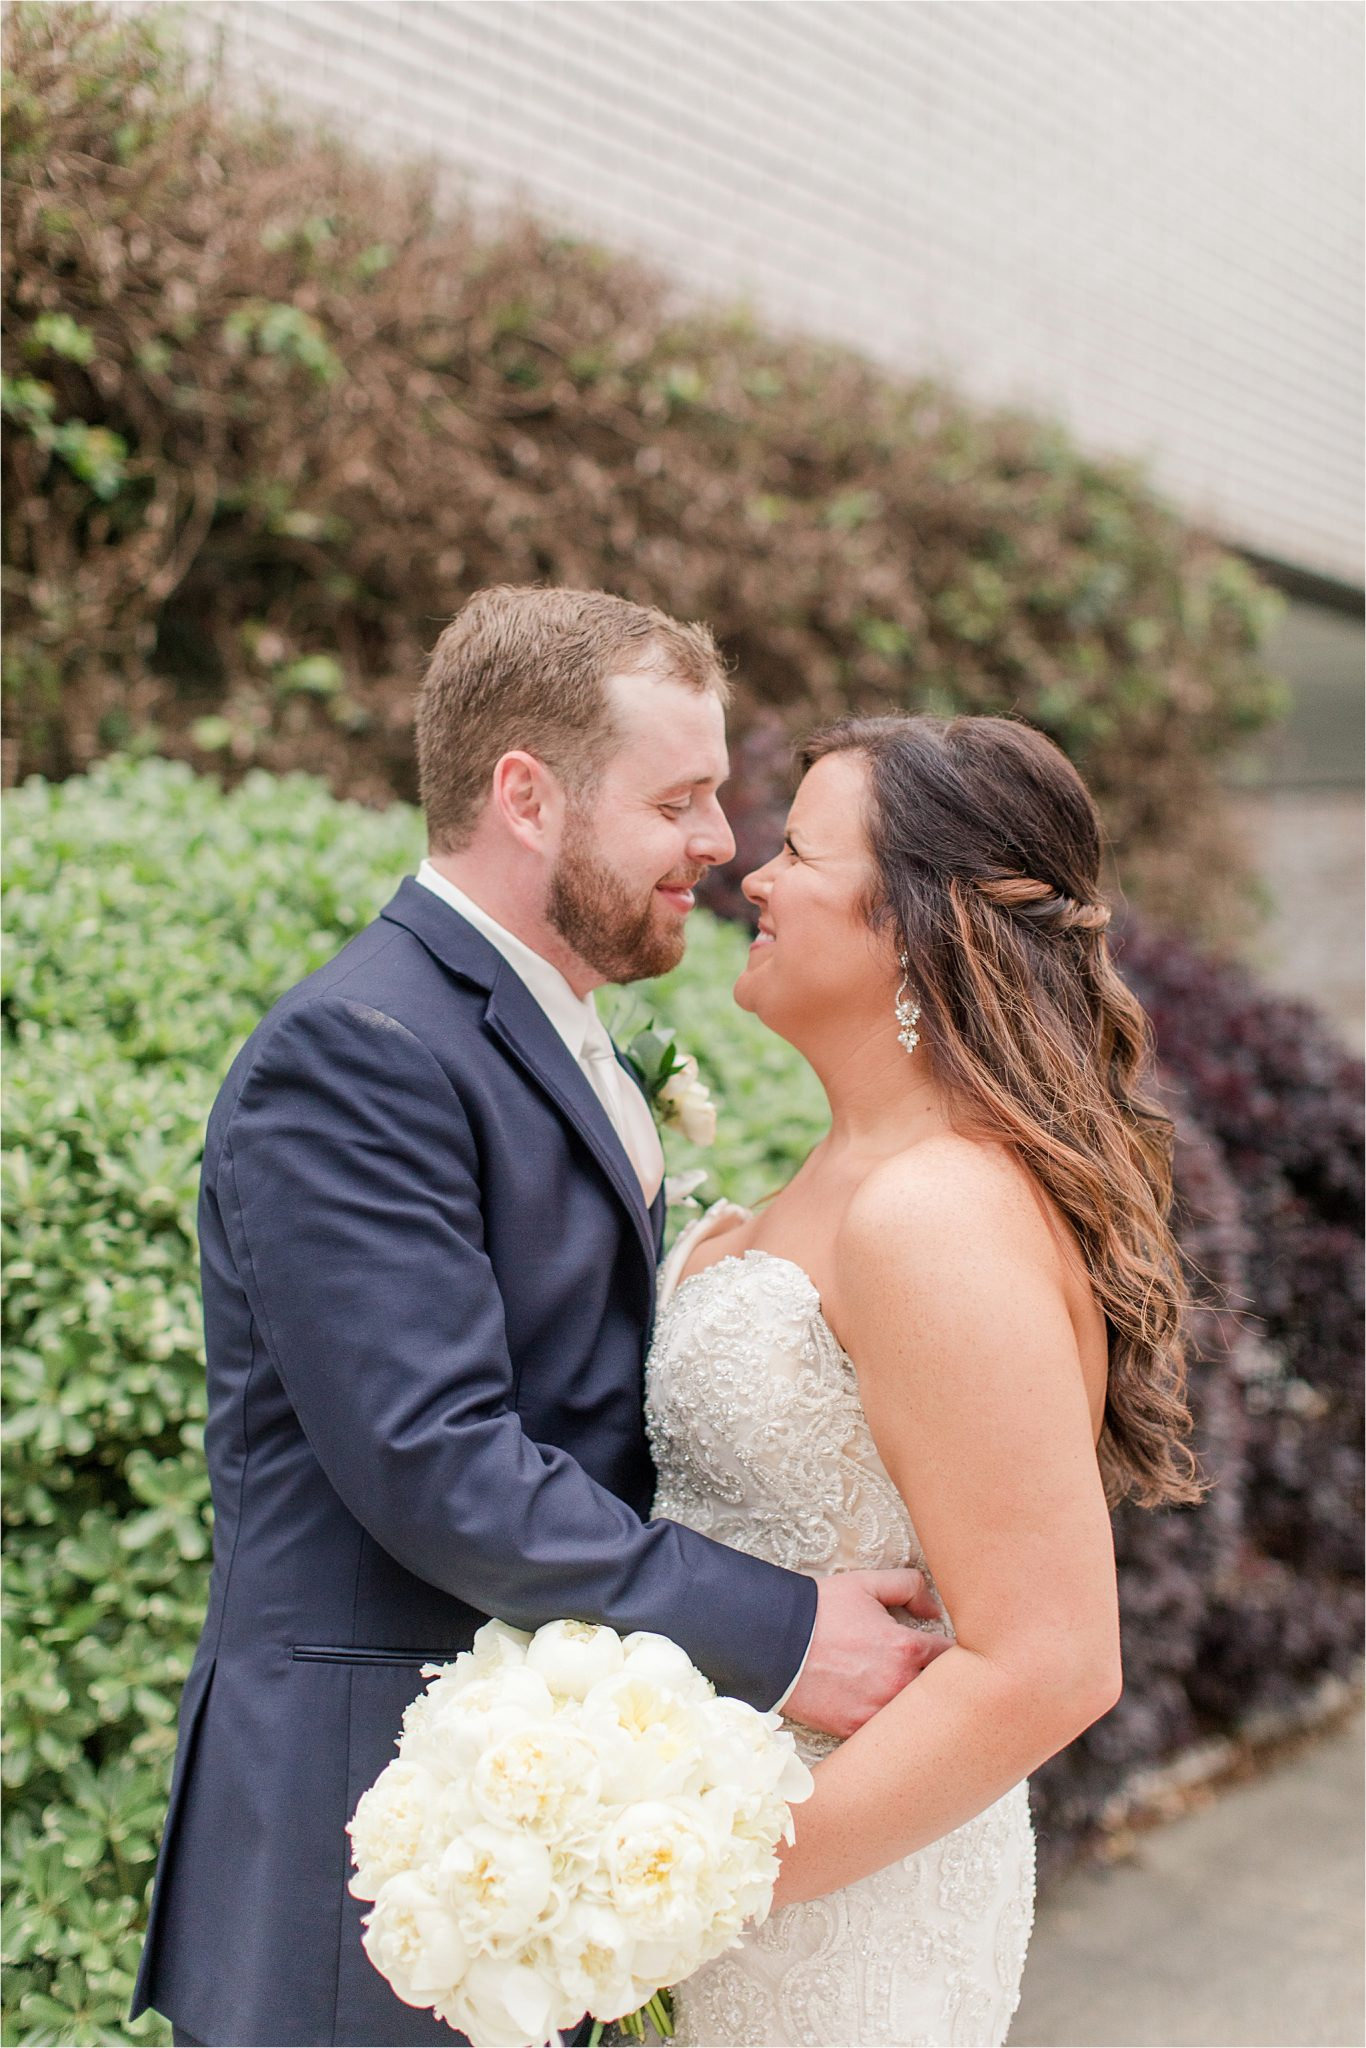 bride and groom photos-navy suit-white roses-wedding day photos-white tie-husband and wife photos